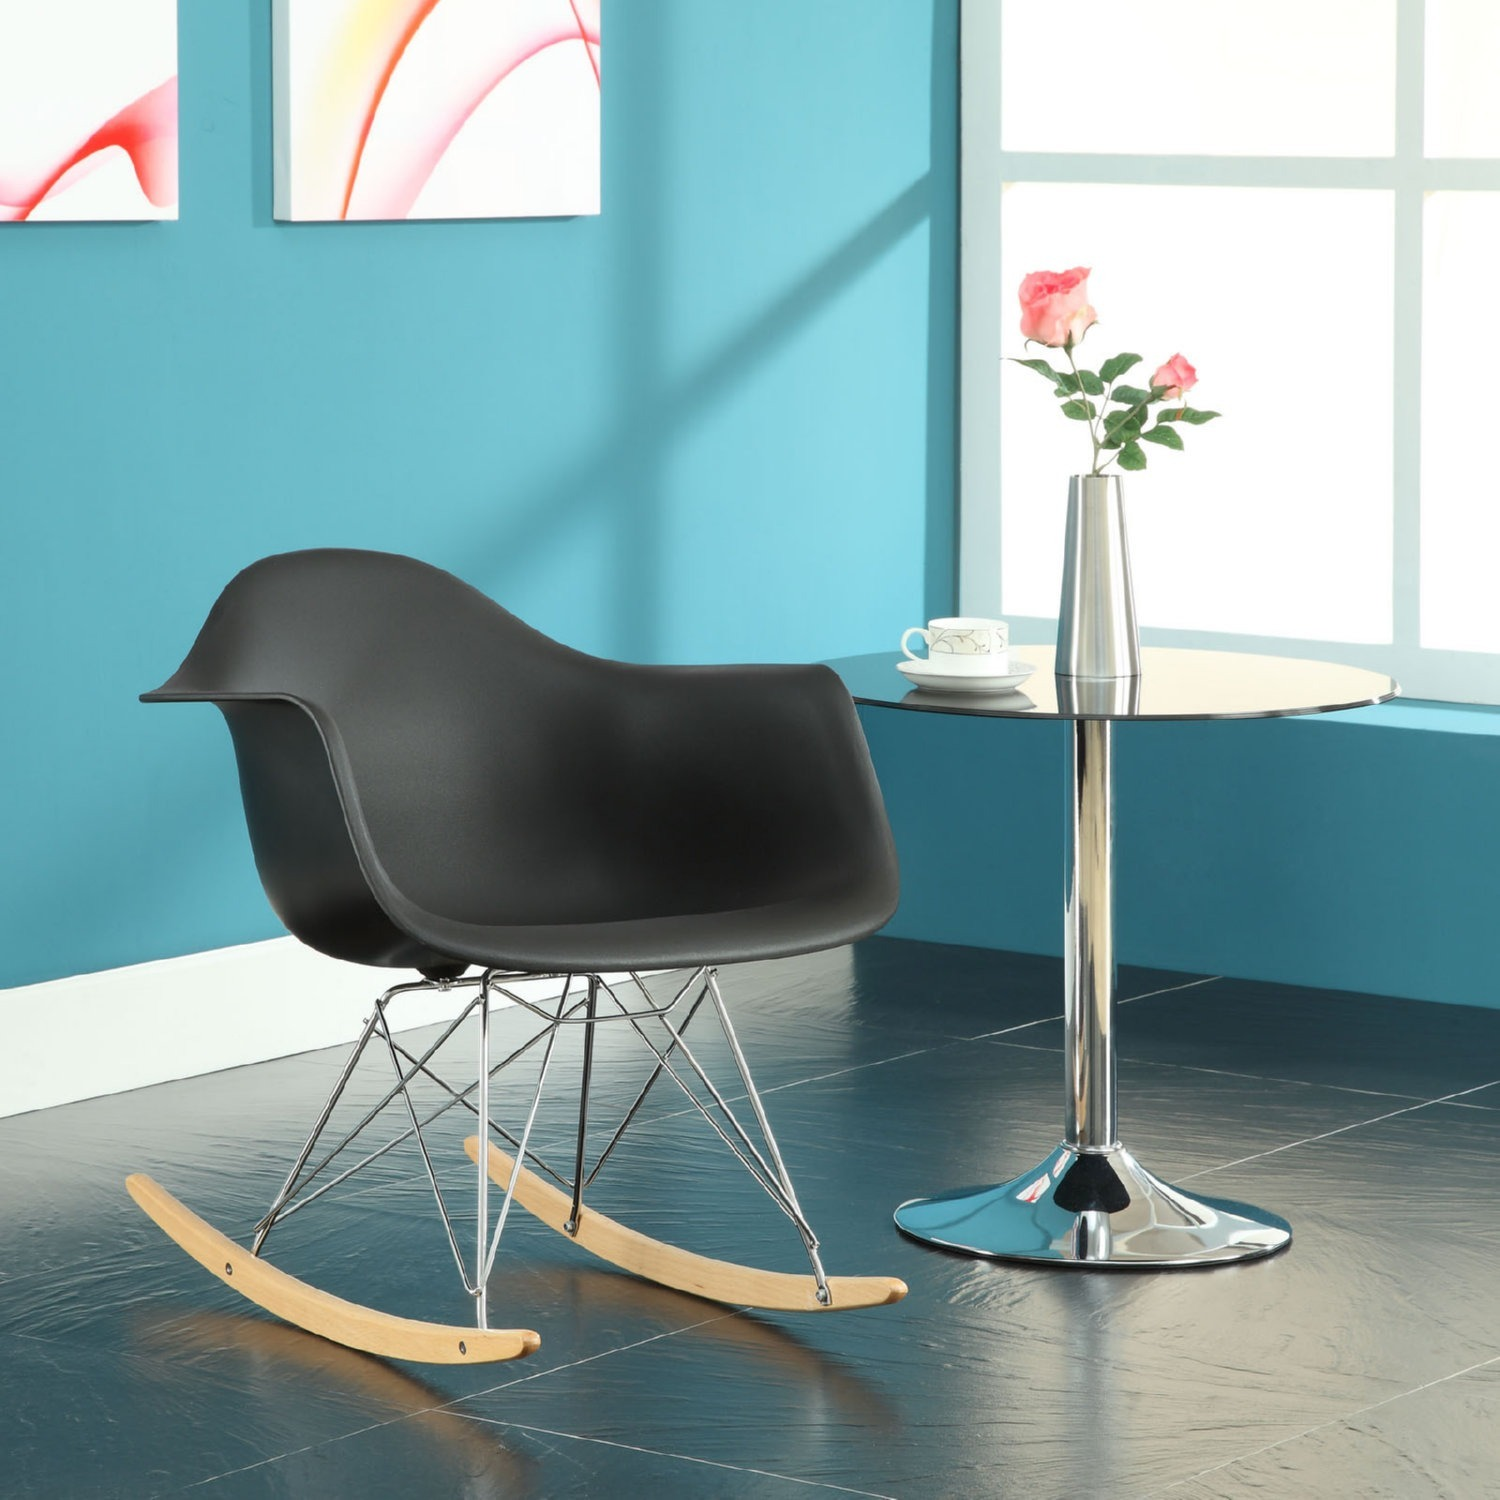 Retro Modern Lounge Chair In Black W/ Chrome Base - image-3